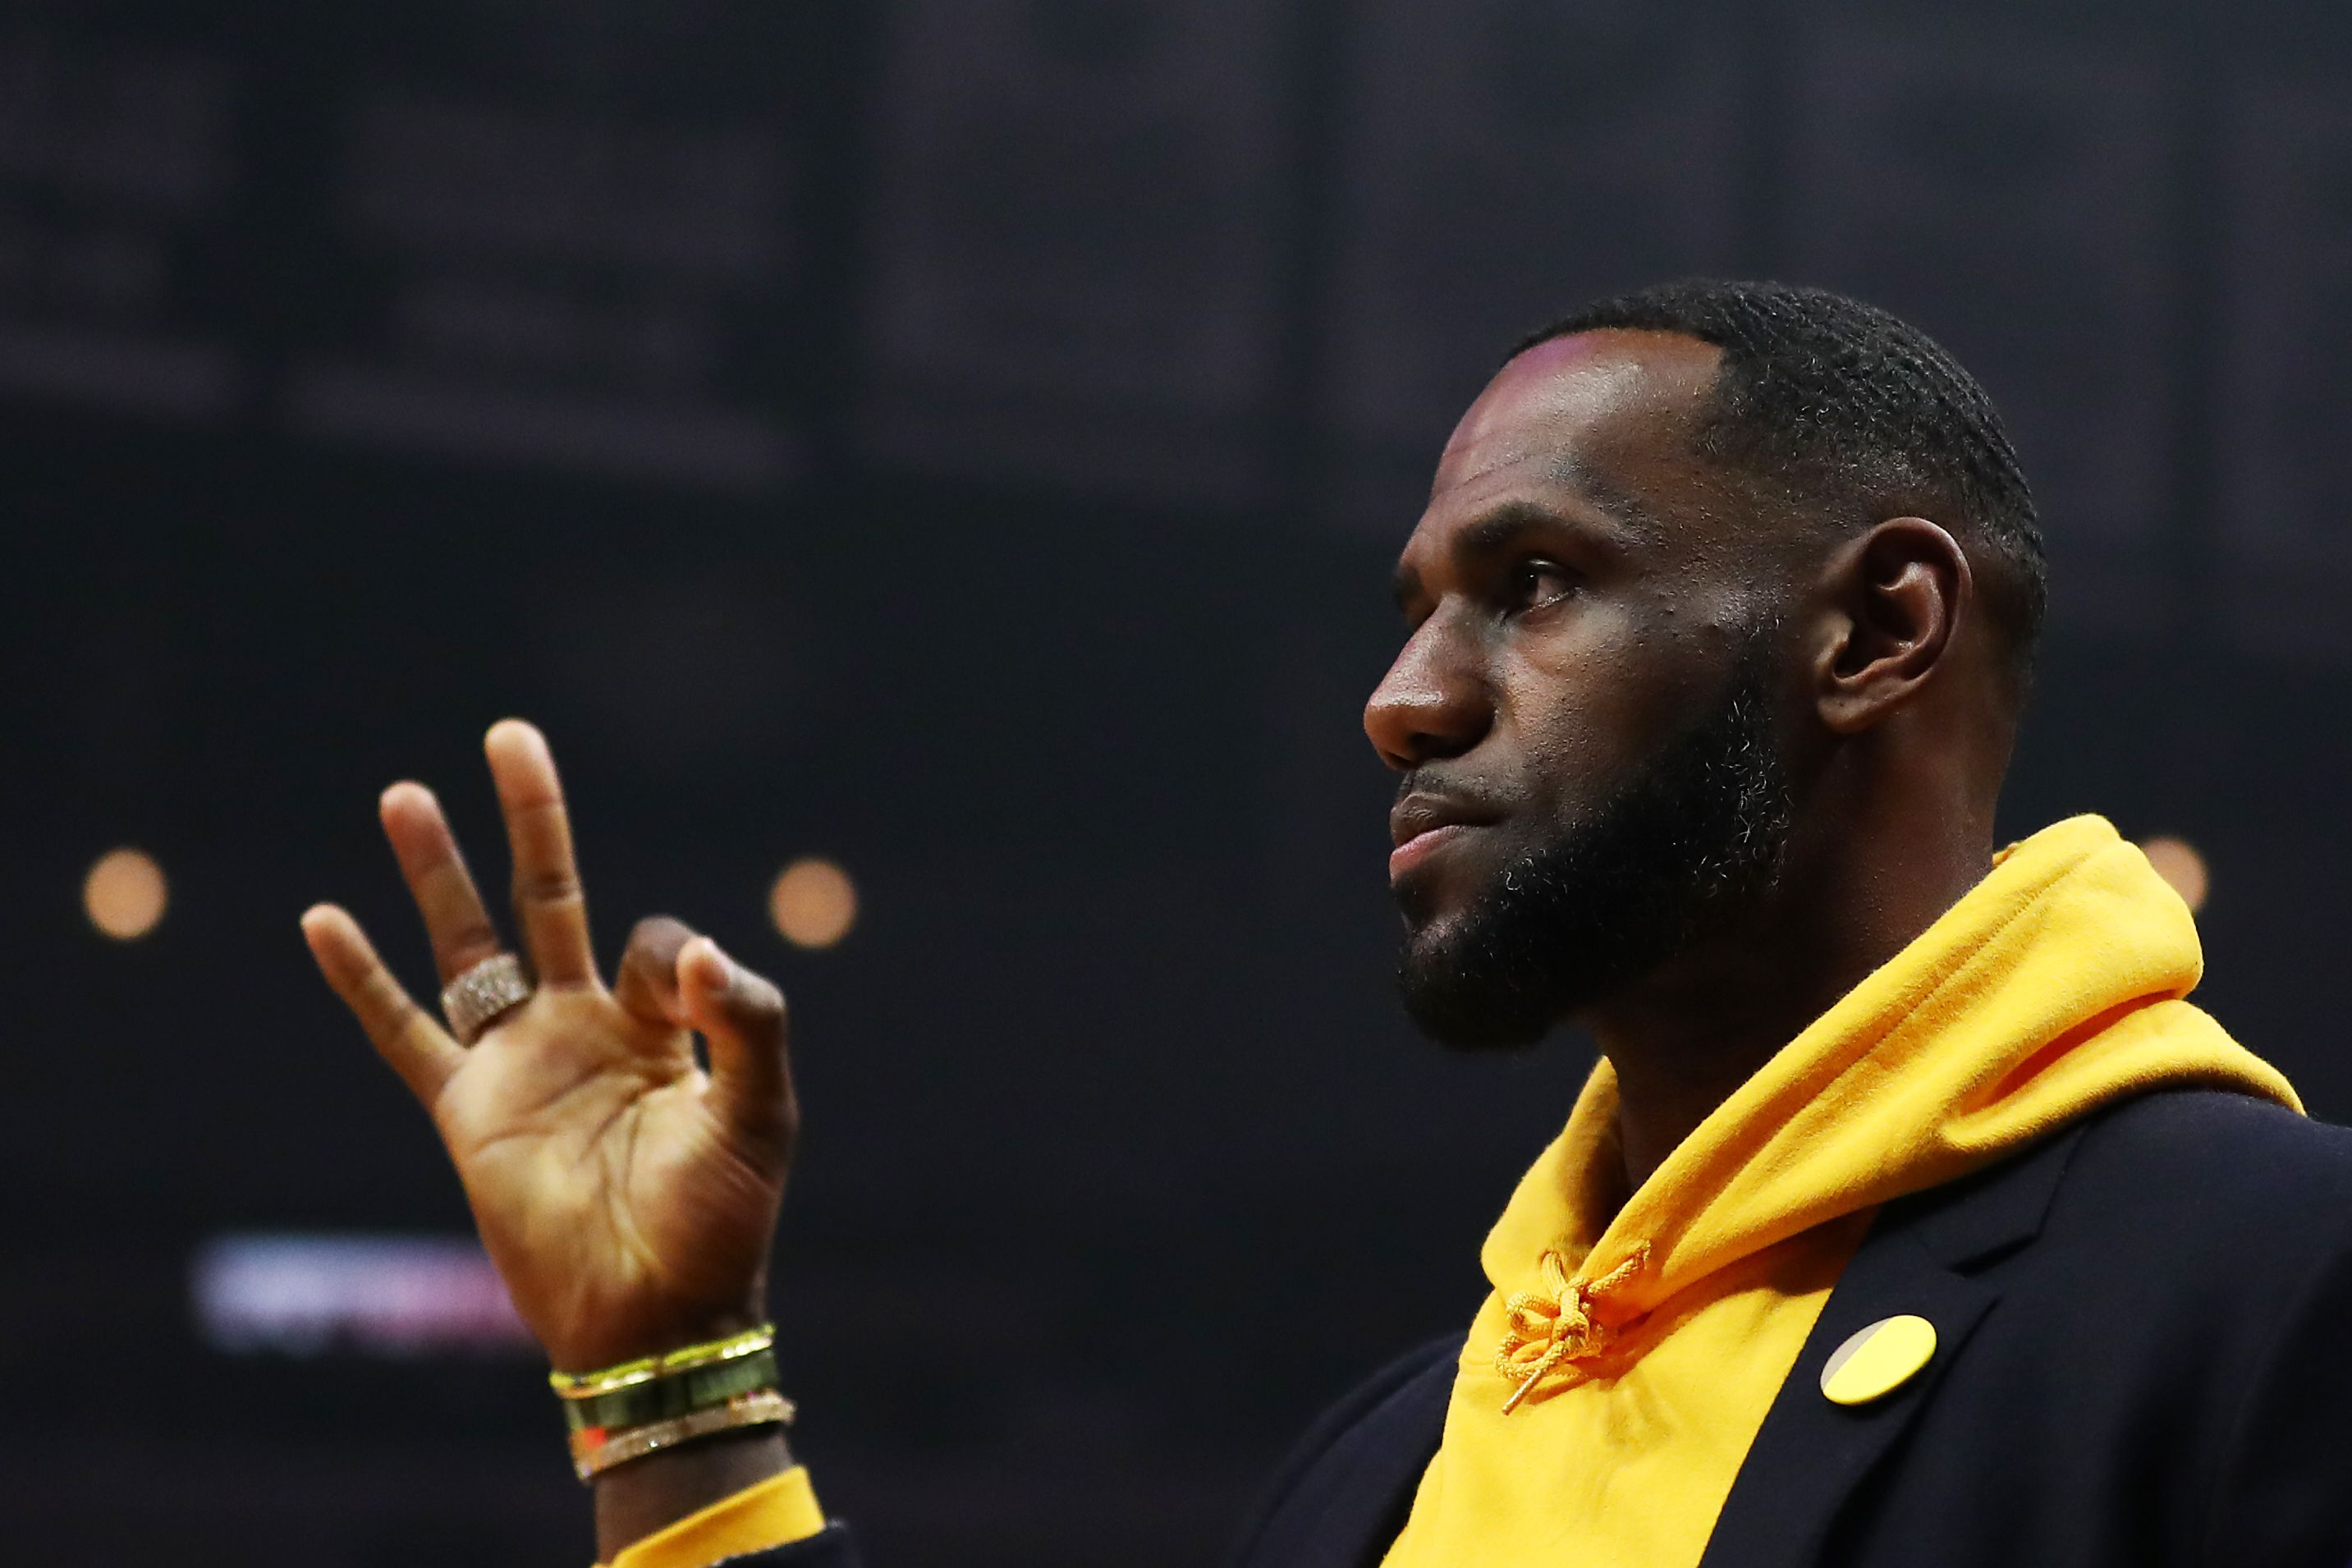 The Internet Just Dragged LeBron James For His 'Sexy' Squats. Here's How to Do Them Right.